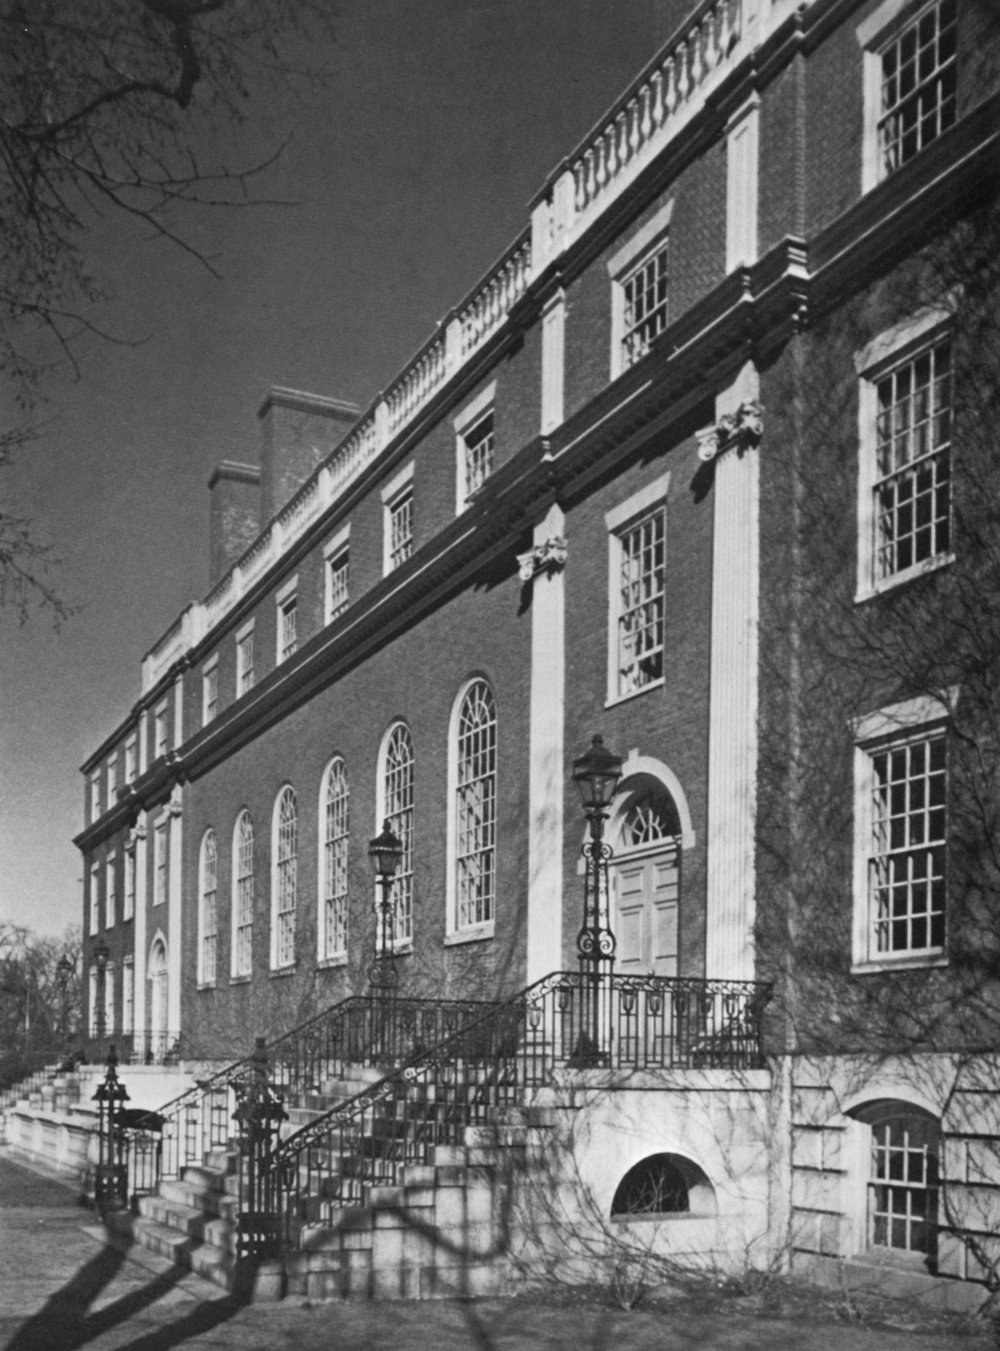 RADCLIFFE COLLEGE, LONGFELLOW HAL L, Cambridge, MA